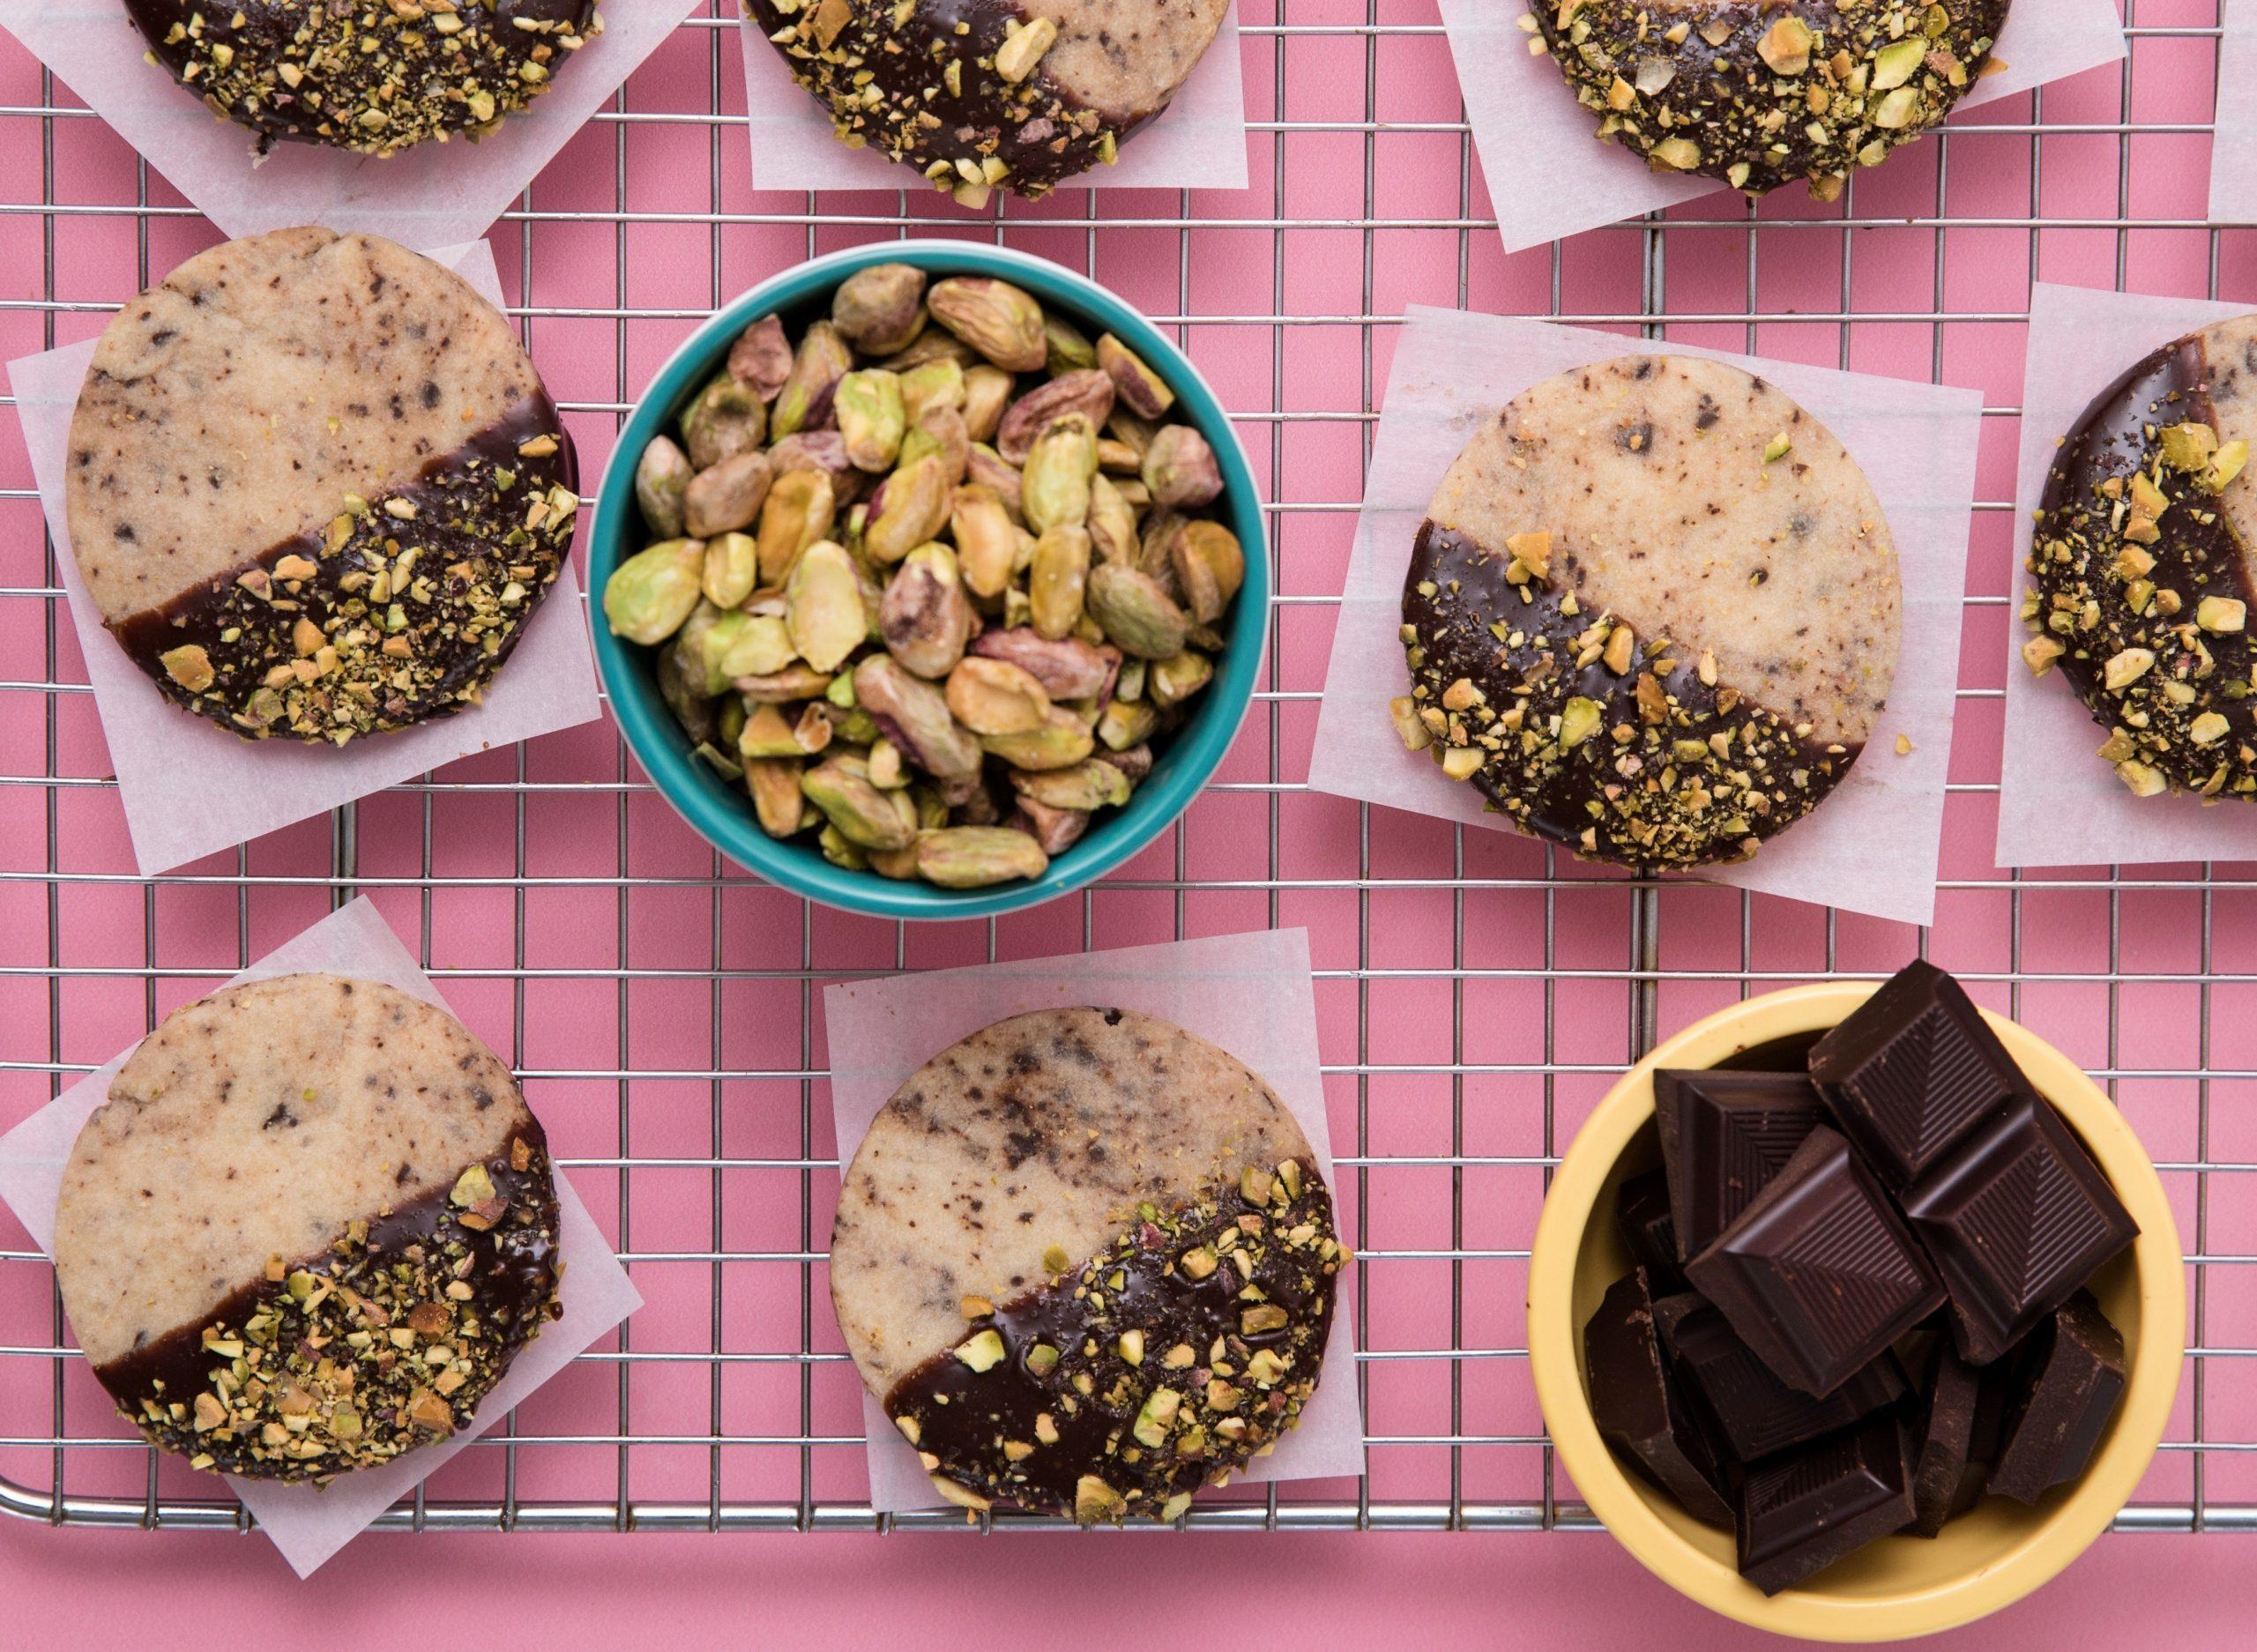 Chocolate Dipped Shortbread Cookies with Pistachios